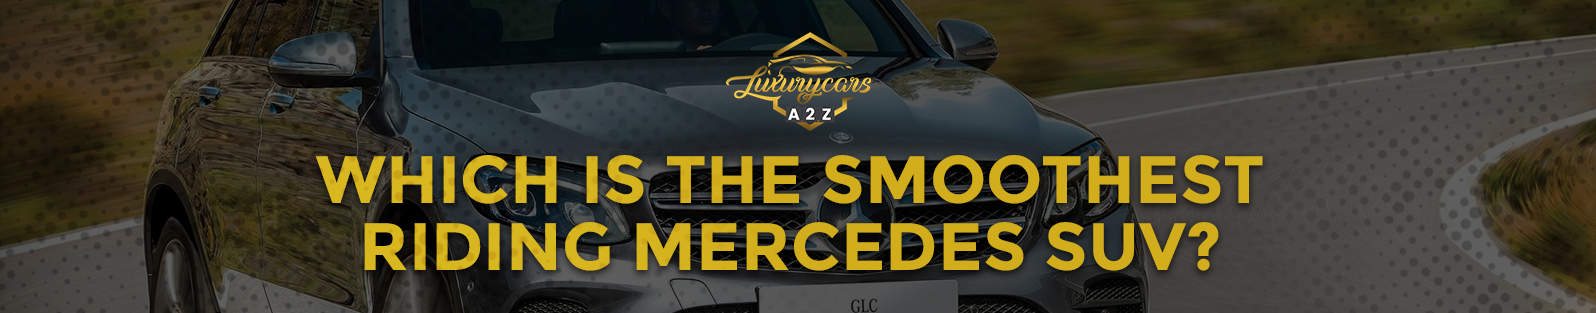 Which is the smoothest riding Mercedes SUV?